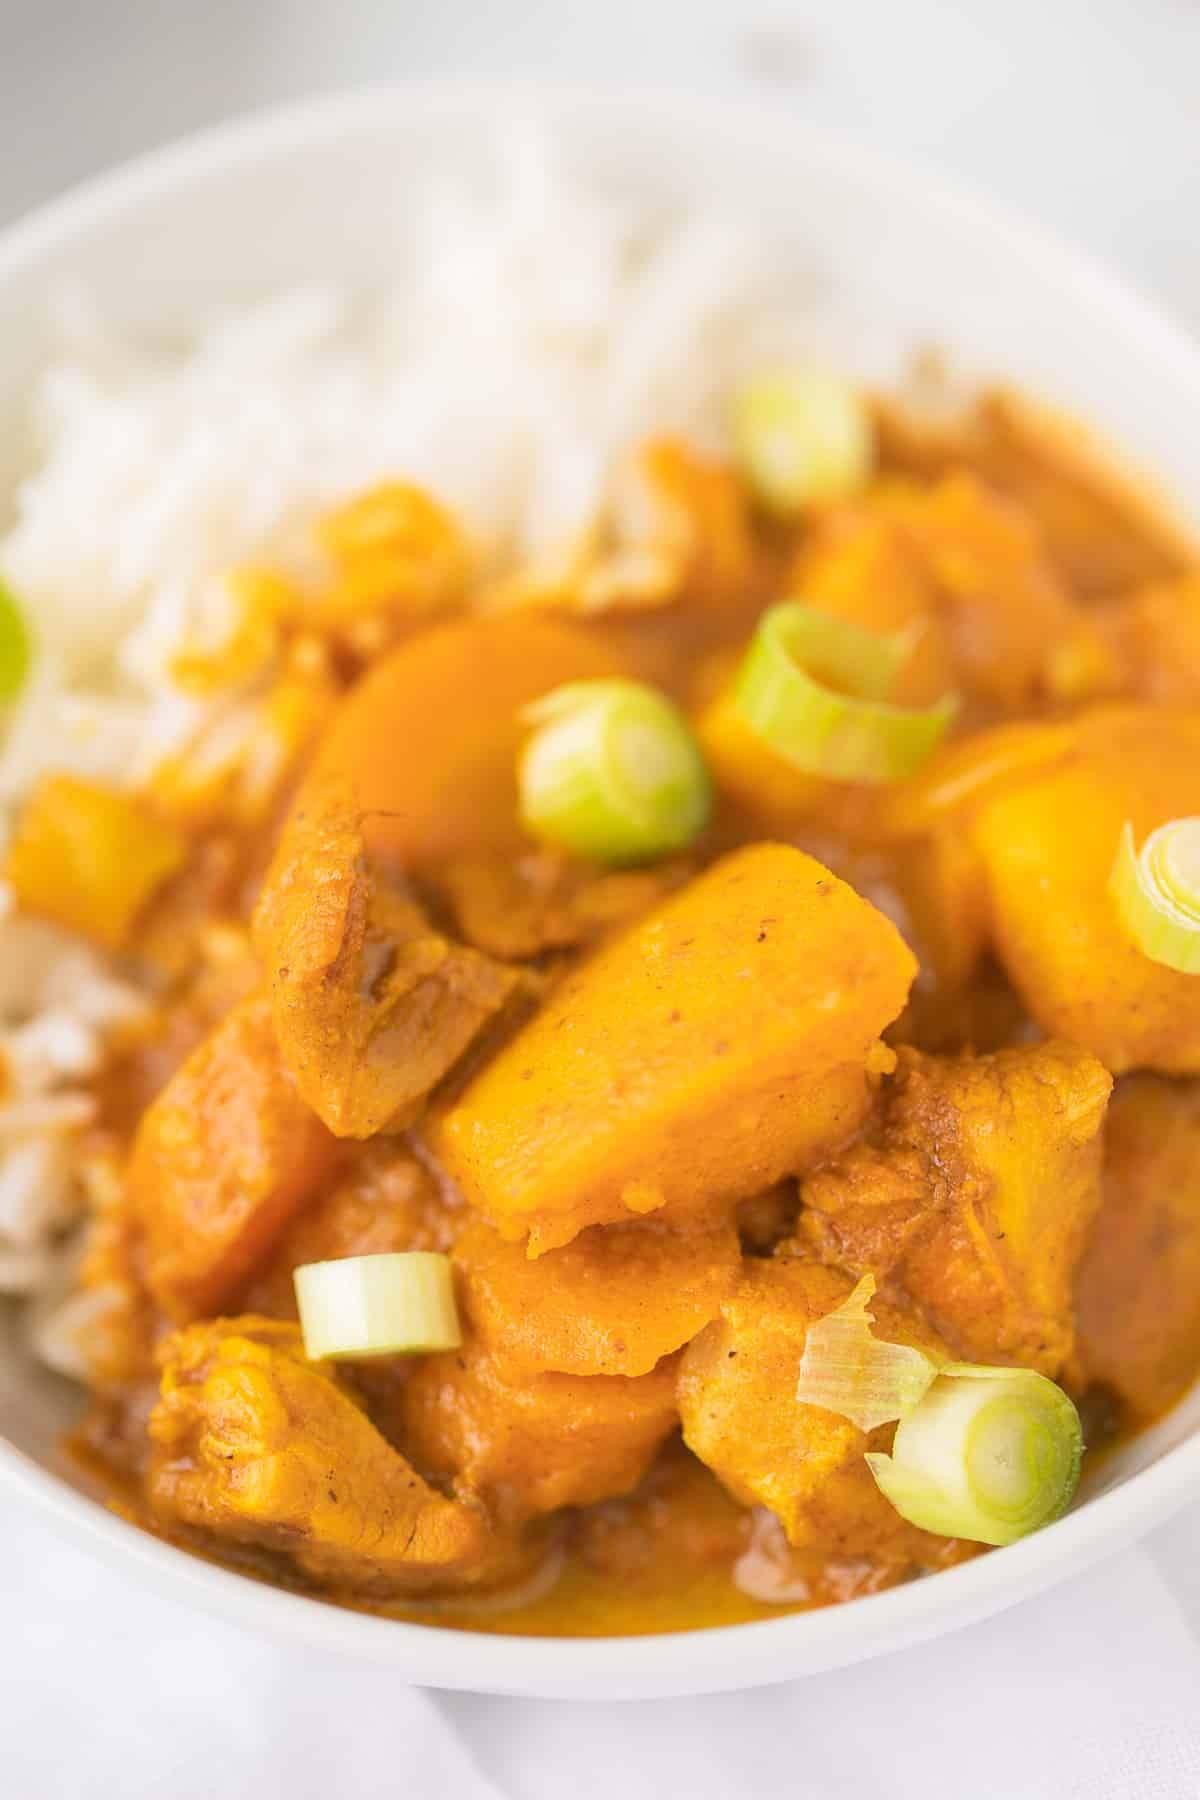 picture of the curry with vegetables and green onions